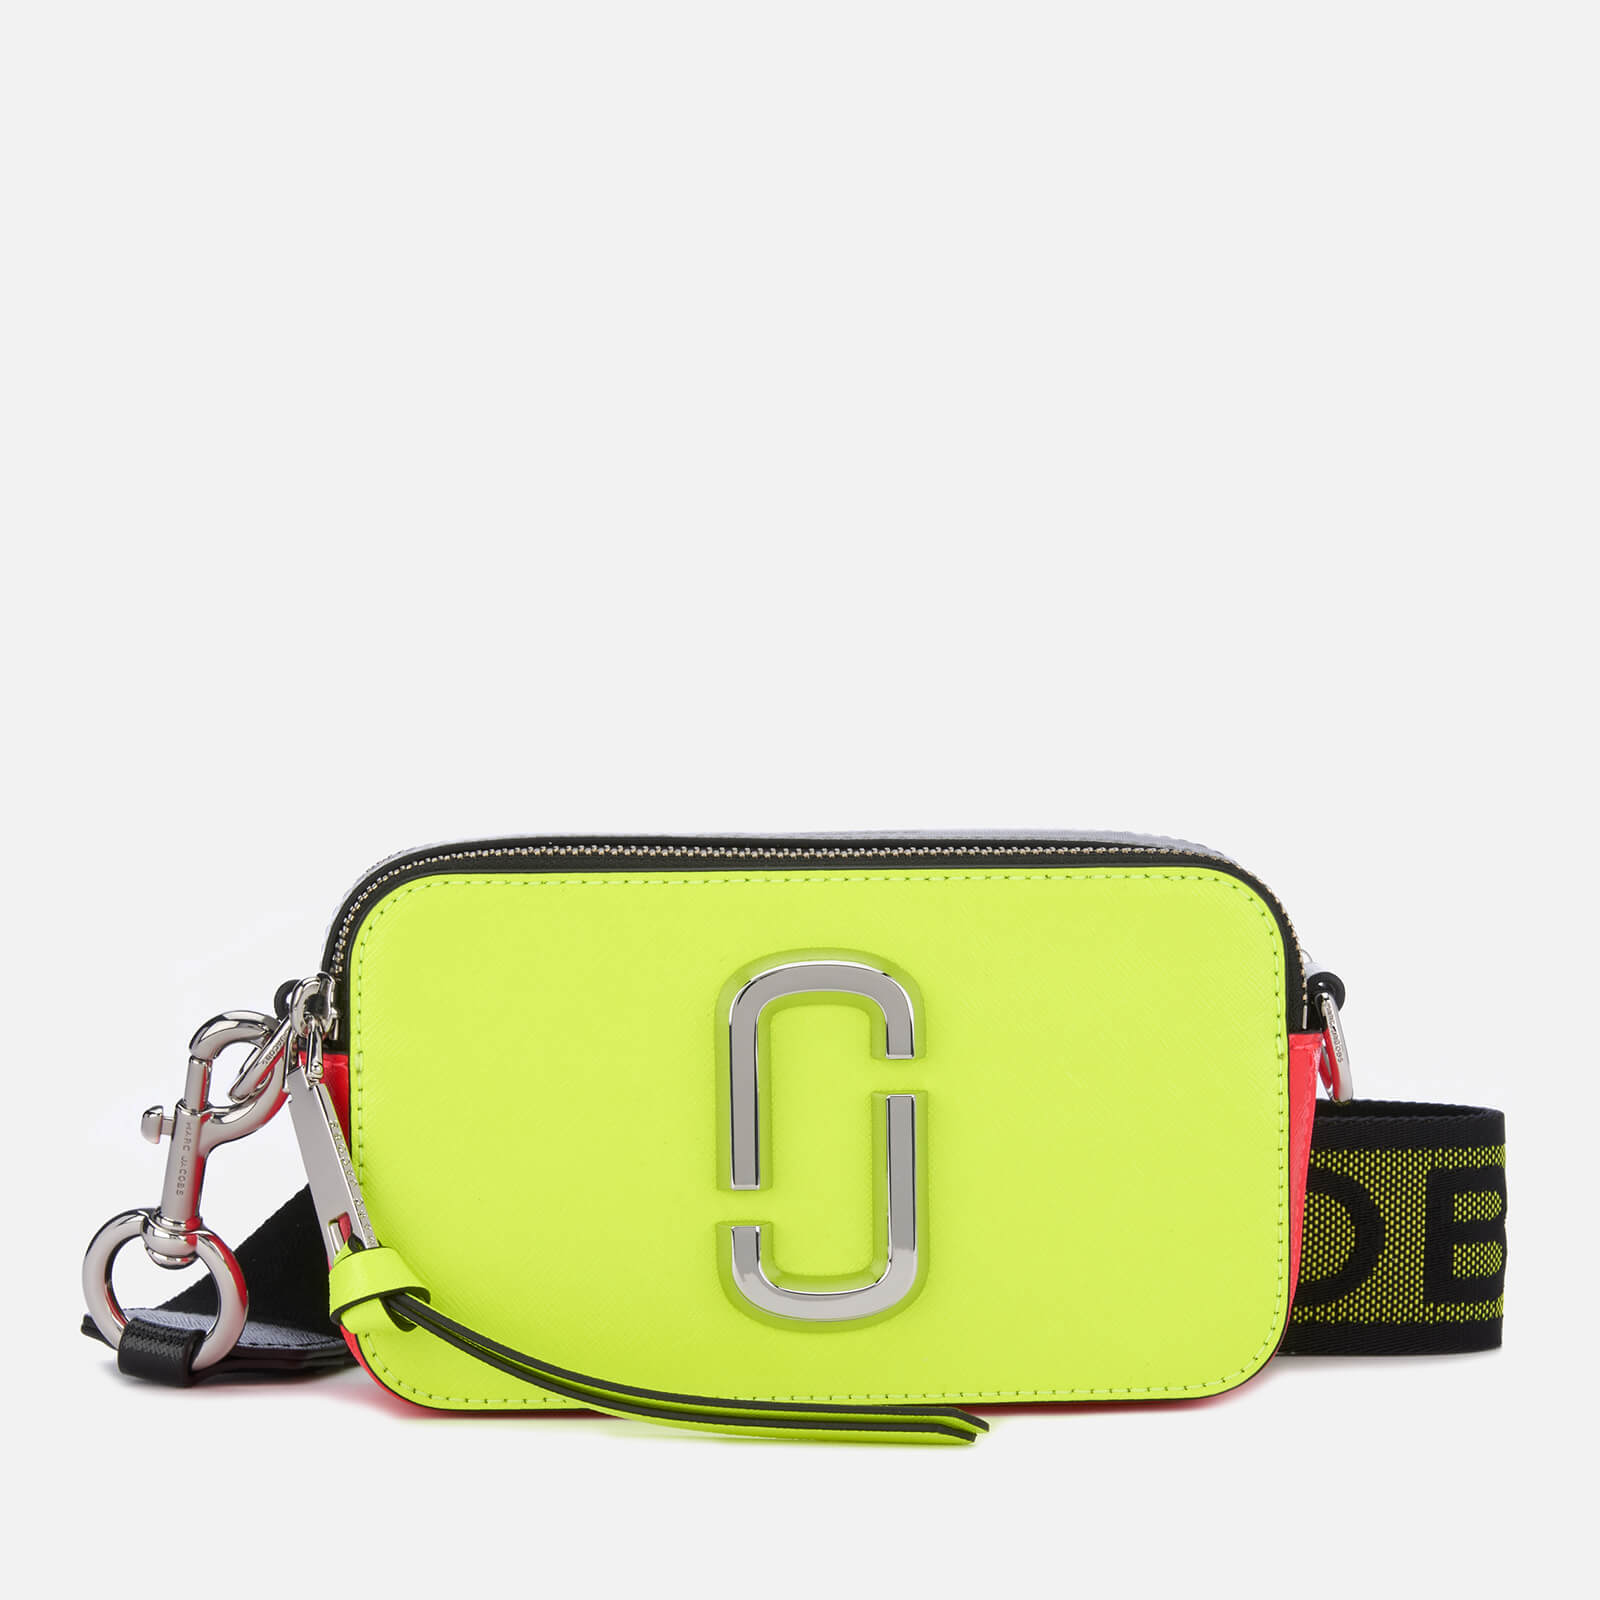 Marc Jacobs Women's Snapshot Fluoro Cross Body Bag - Bright Yellow Multi